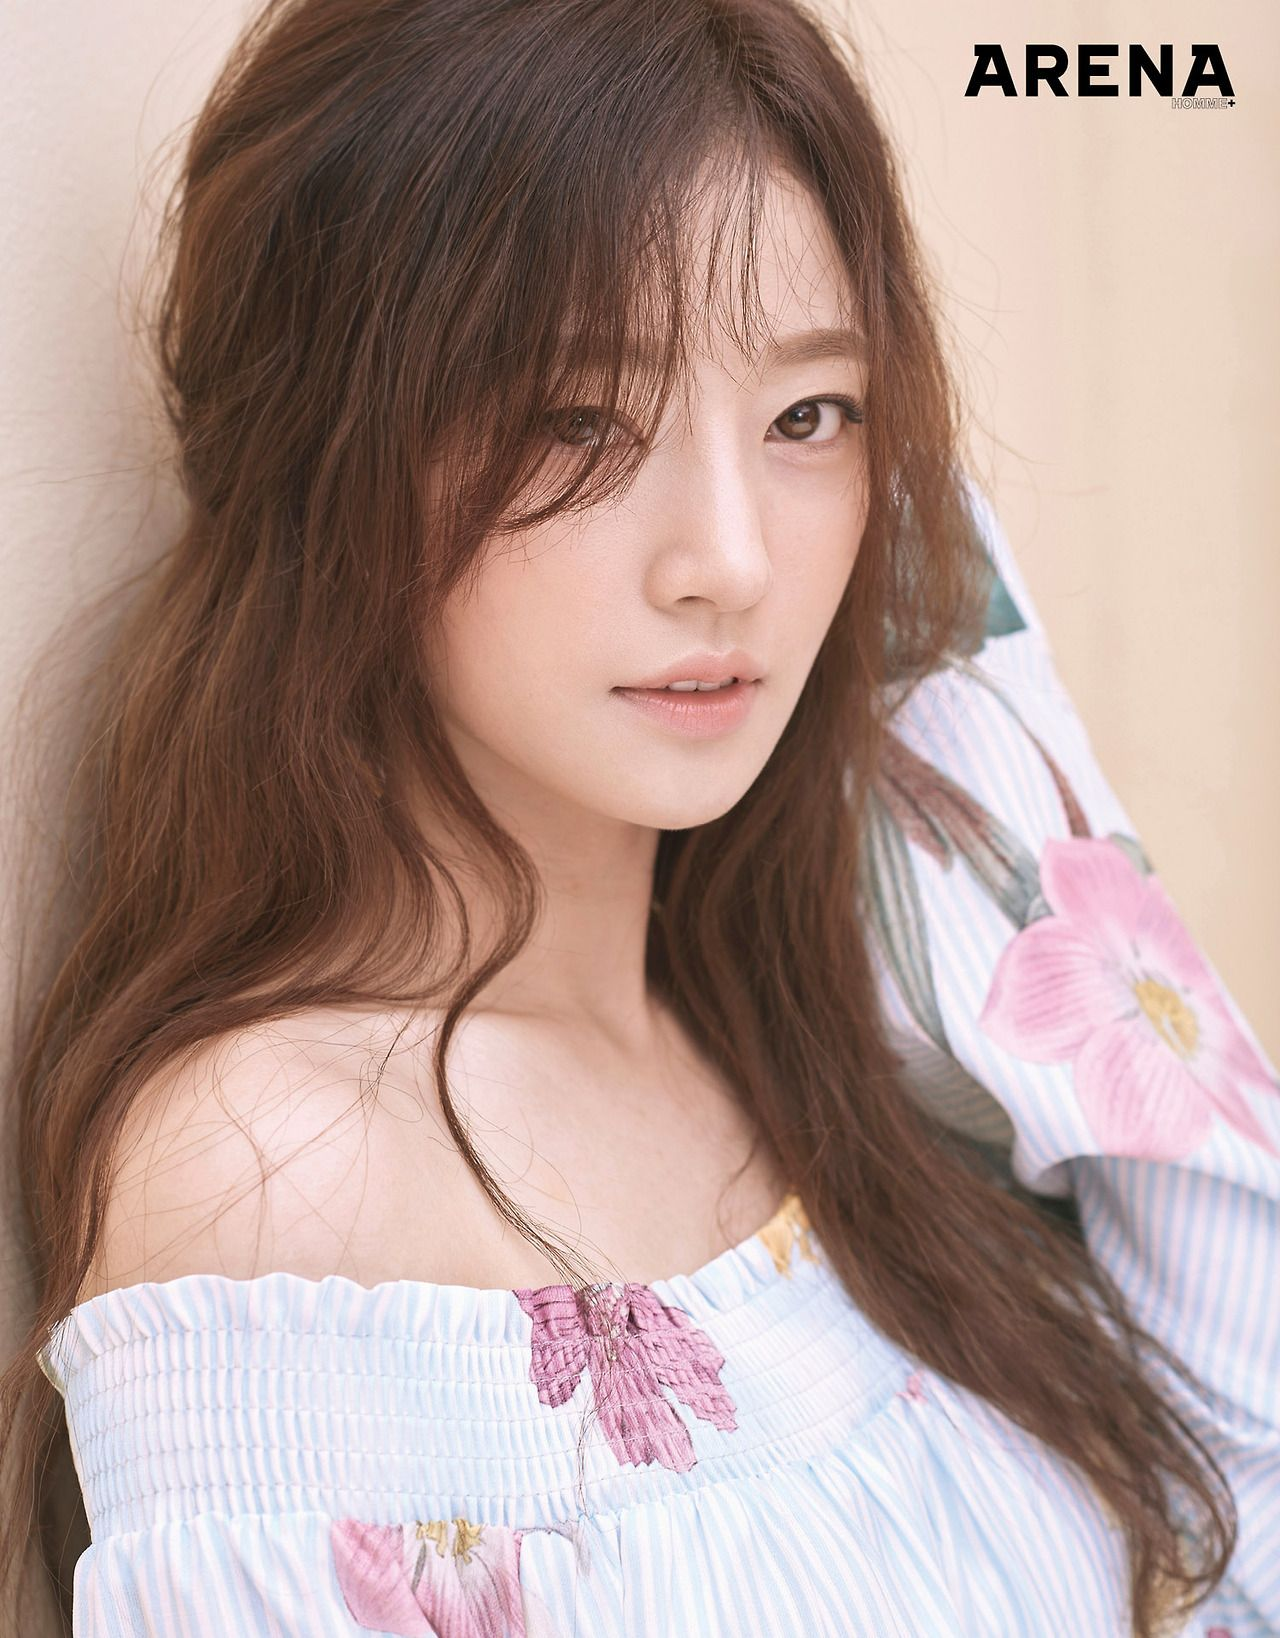 Song Ha Yoon Arena Homme Plus Magazine August Korean Photoshoots Korean Actresses Real Beauty Hairstyles Haircuts